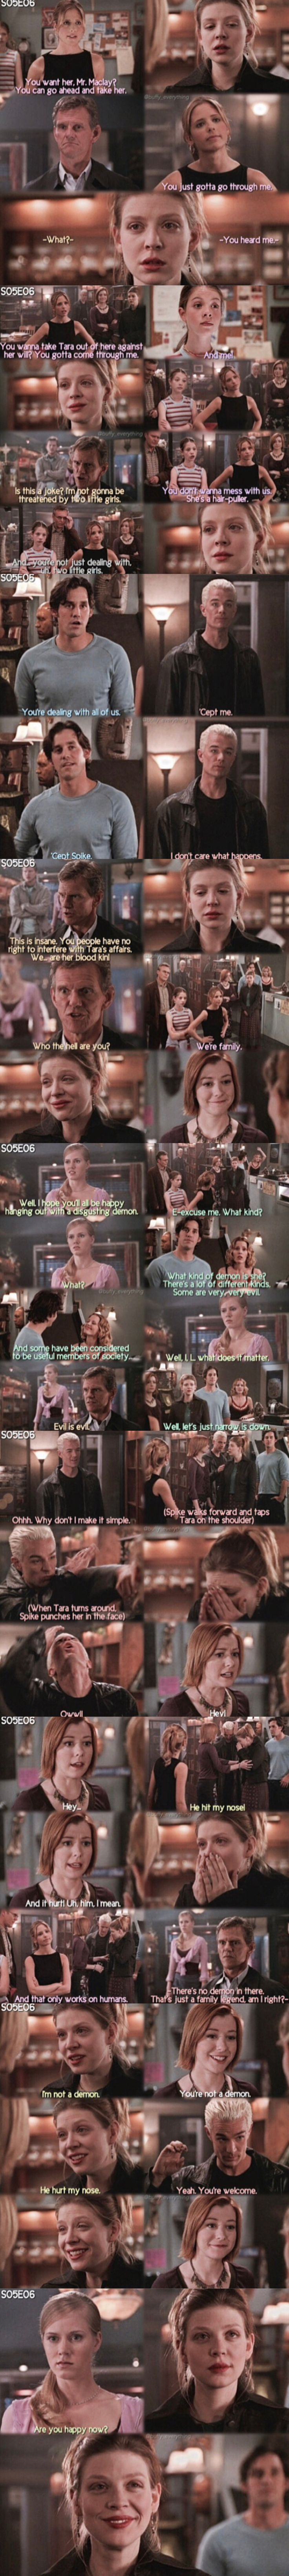 I had forgotten about this scene with Tara. Buffy is still my first fandom.